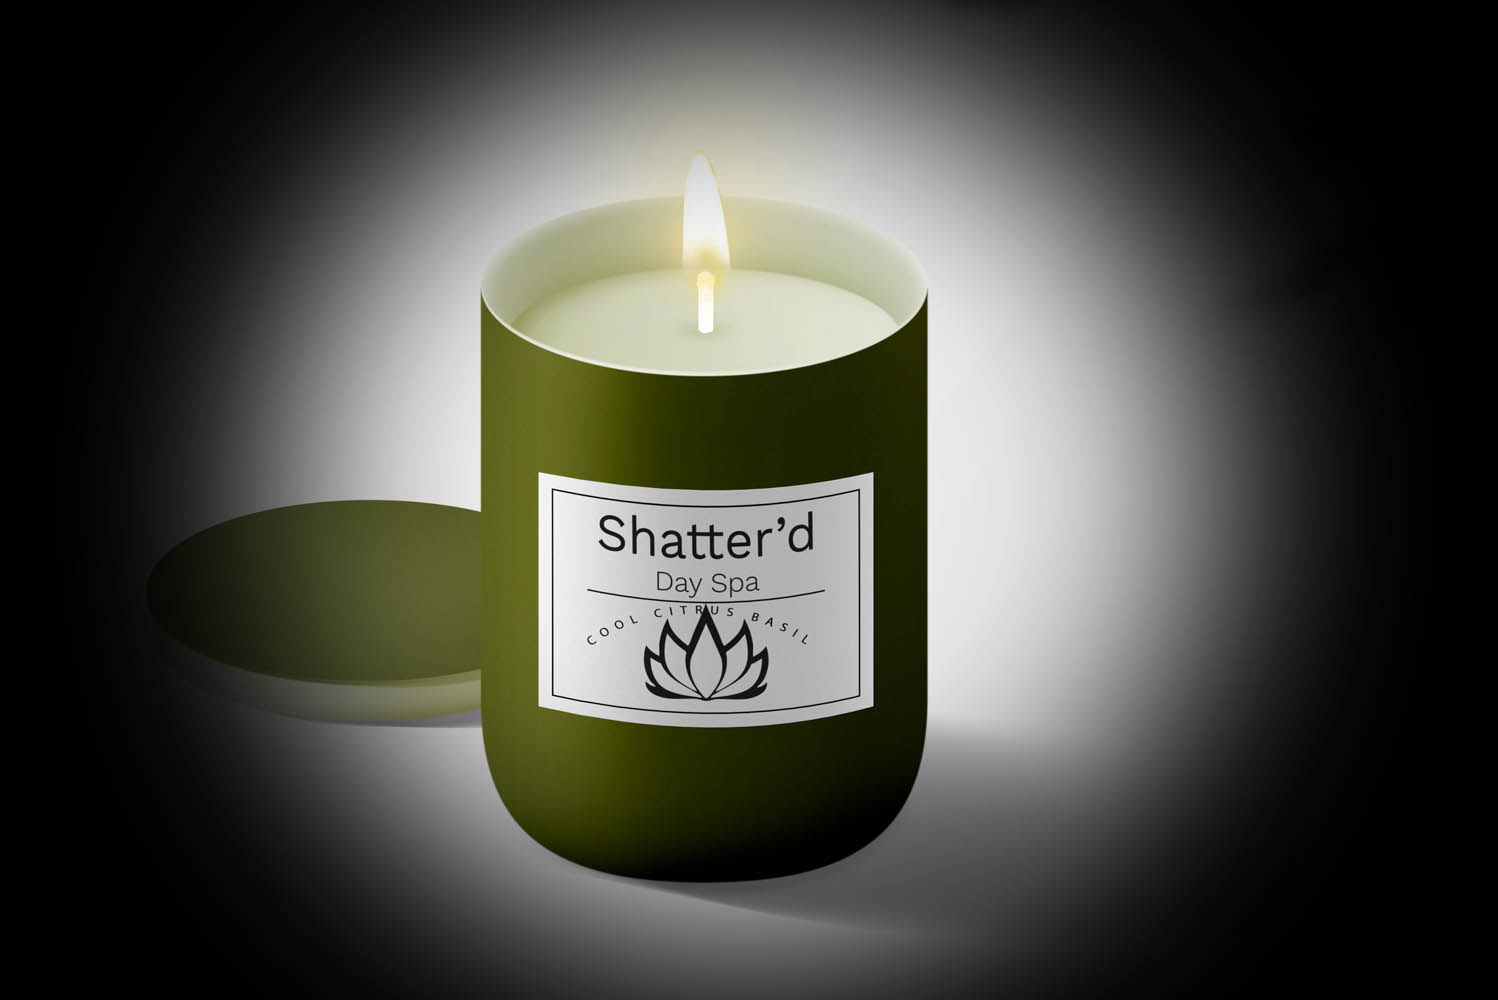 Shatter'd Day Spa - Soaps, candles, holistic therapy